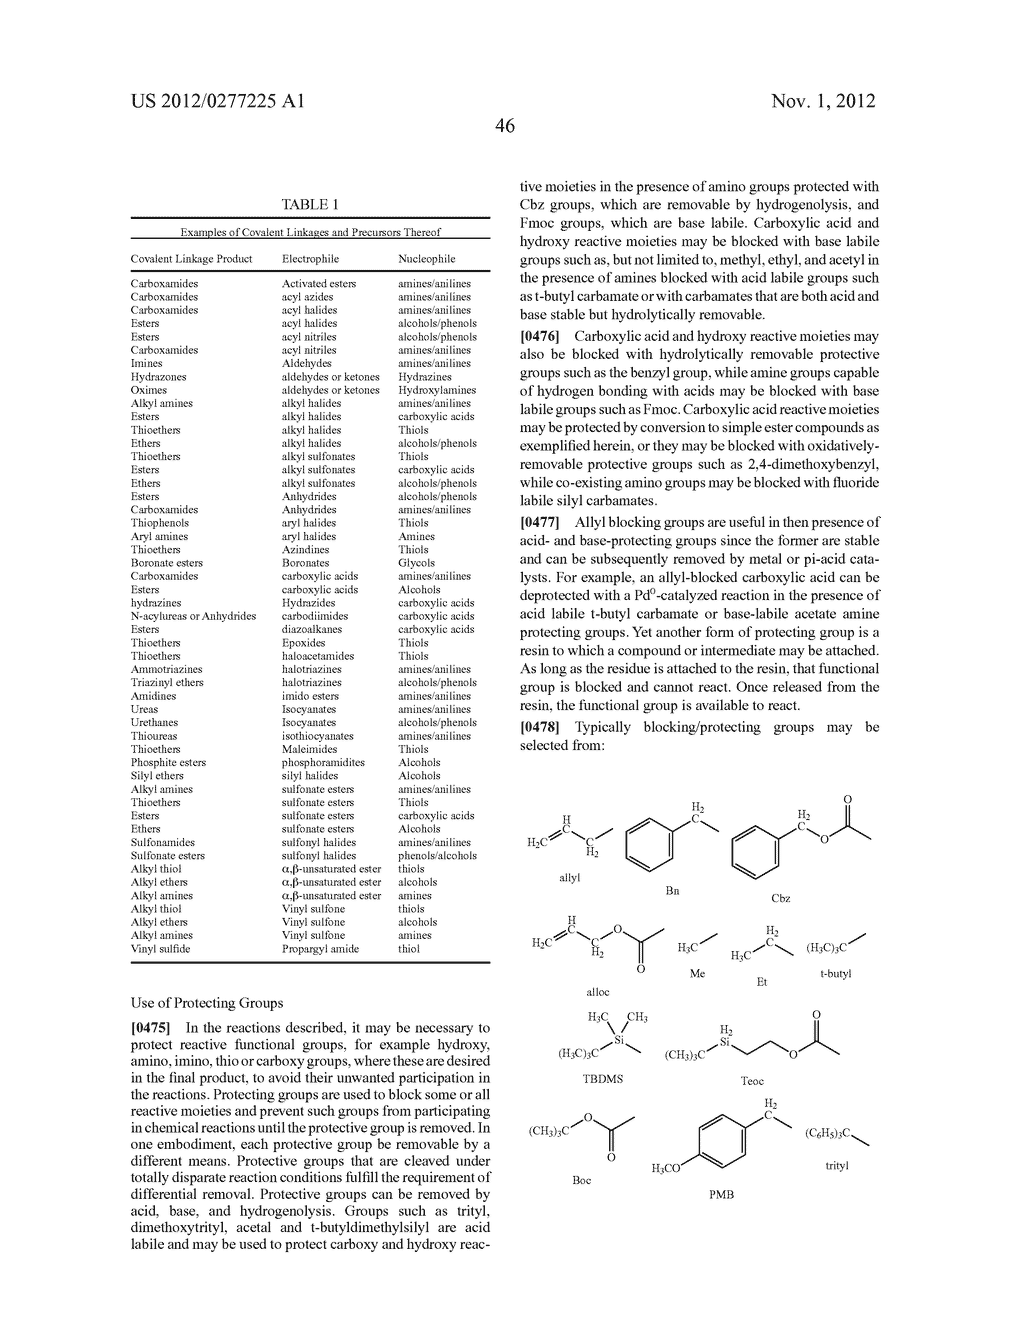 INHIBITORS OF BRUTON'S TYROSINE KINASE - diagram, schematic, and image 54